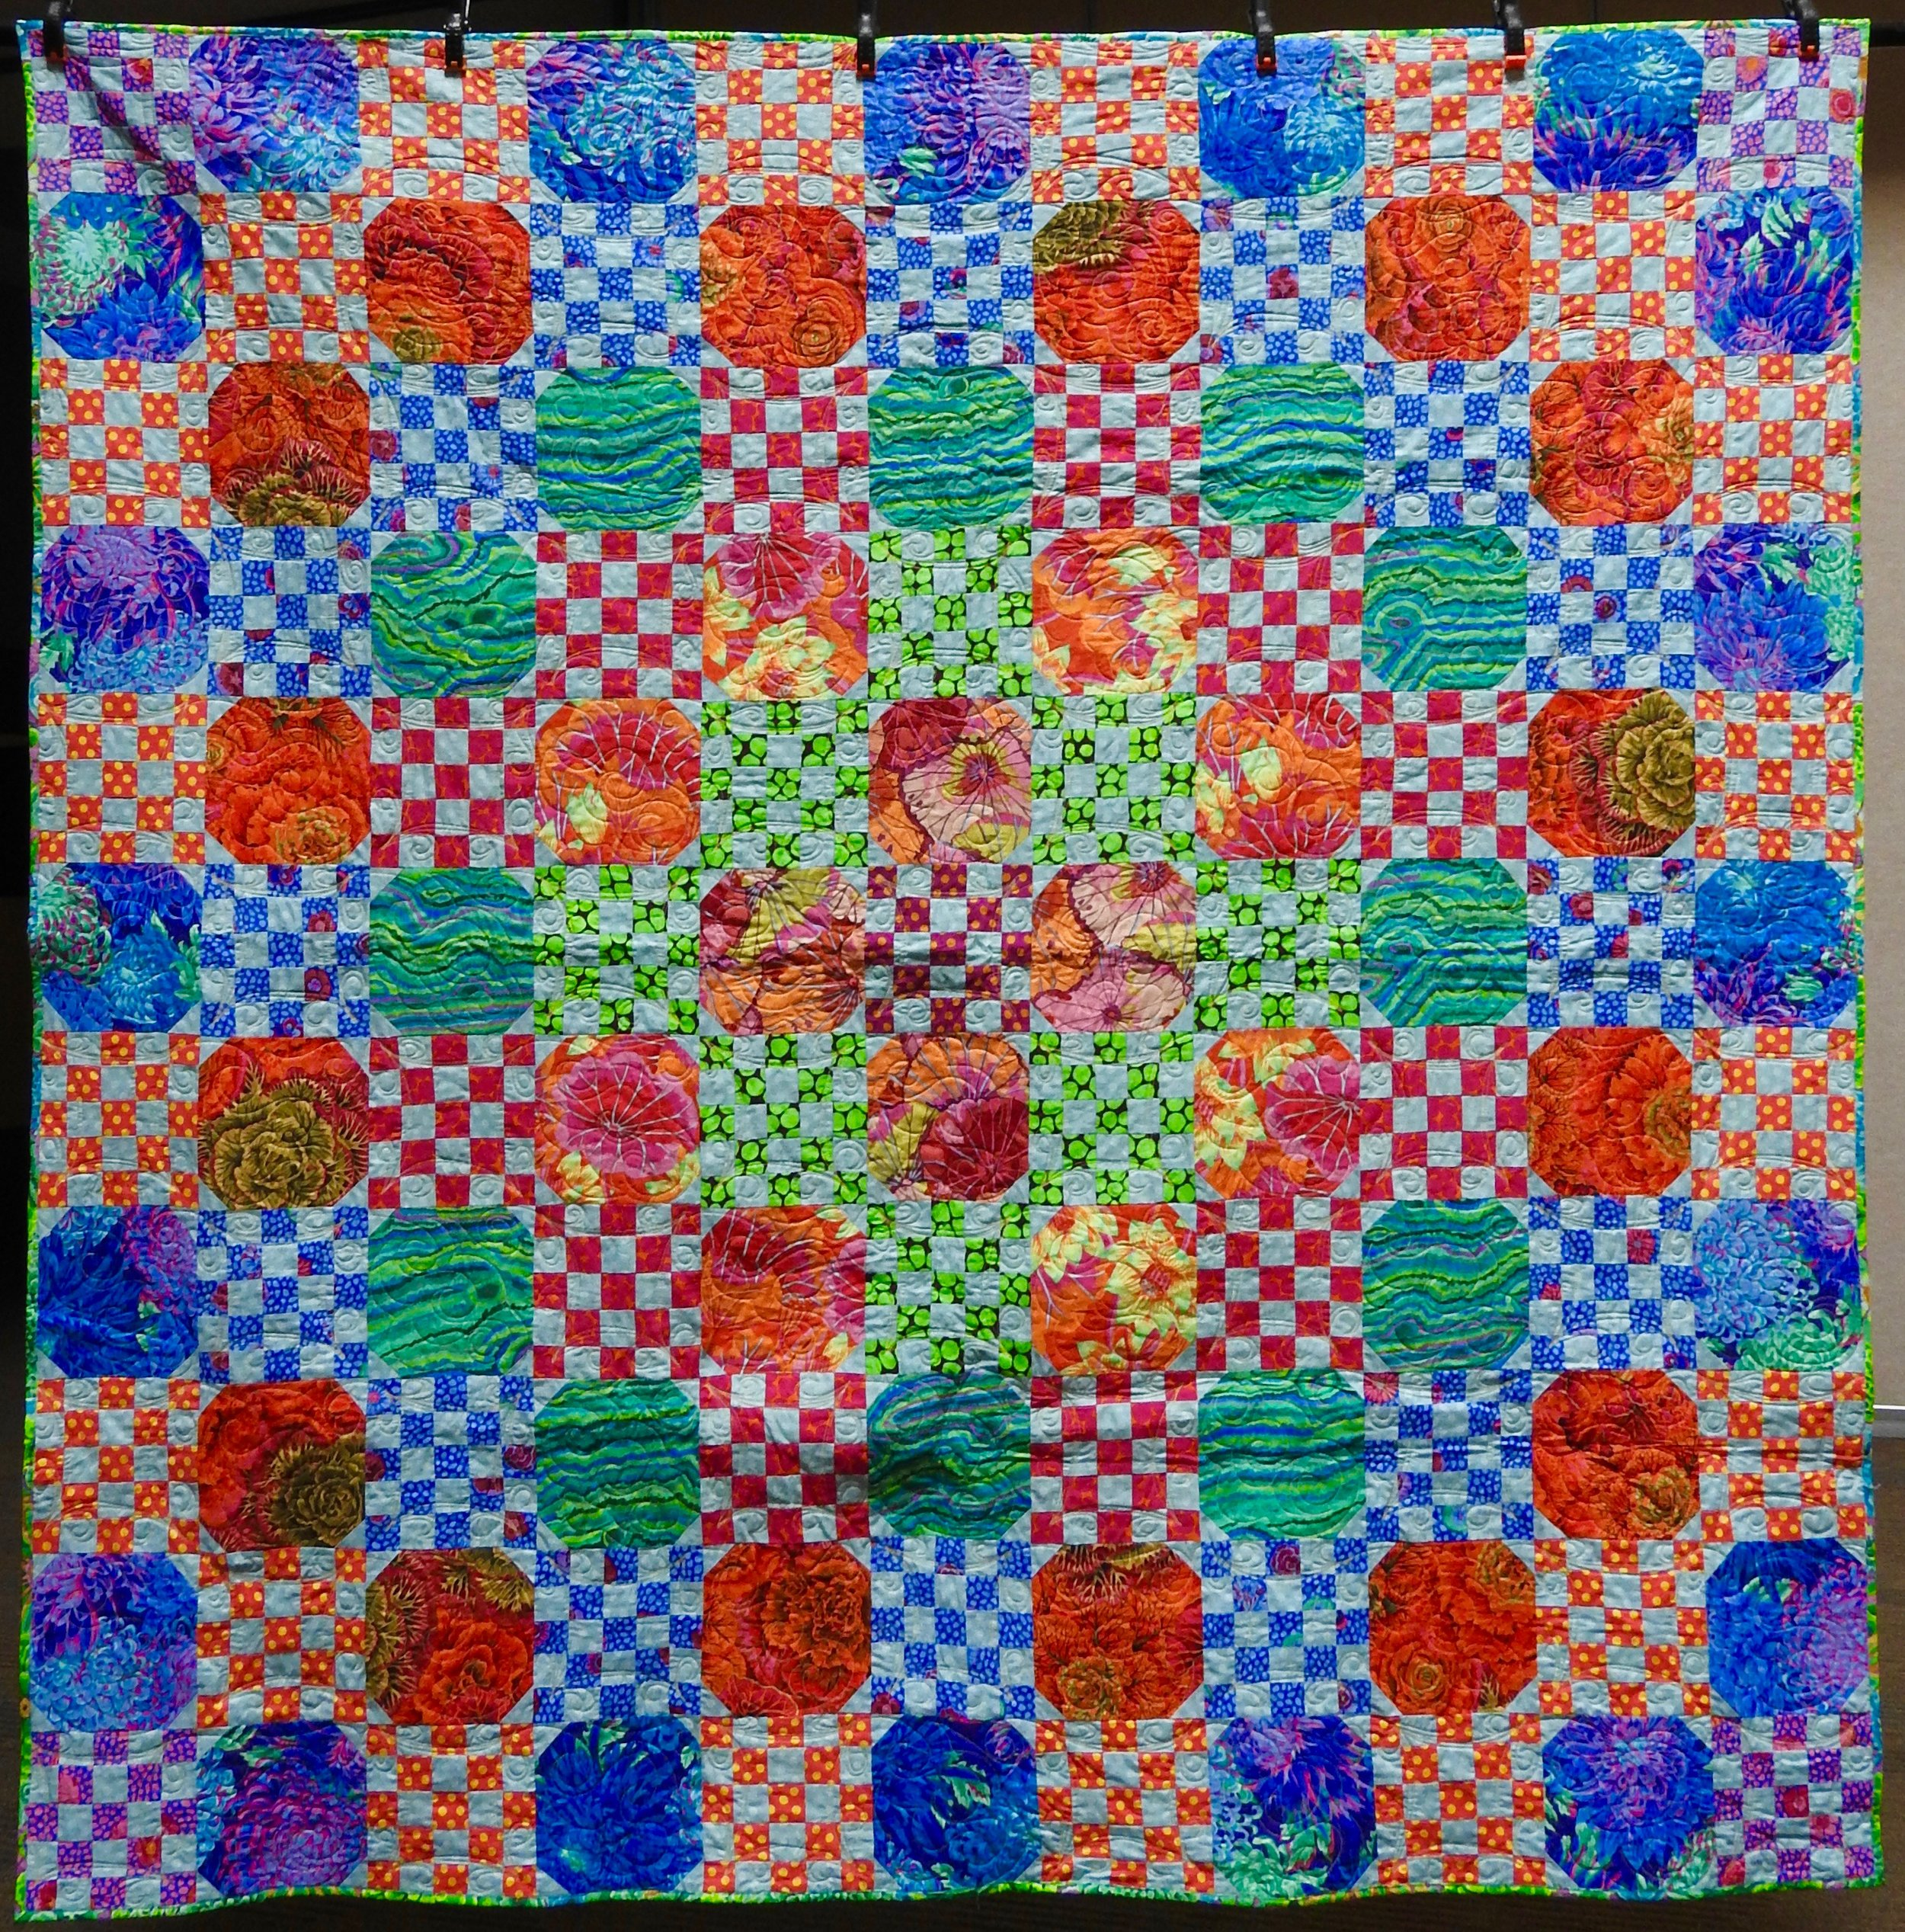 Kaffe Fassett 2018 Mystery Quilt, Pieced, Custom Machine Quilted, donated by Linda Duncan, 80 x 80""